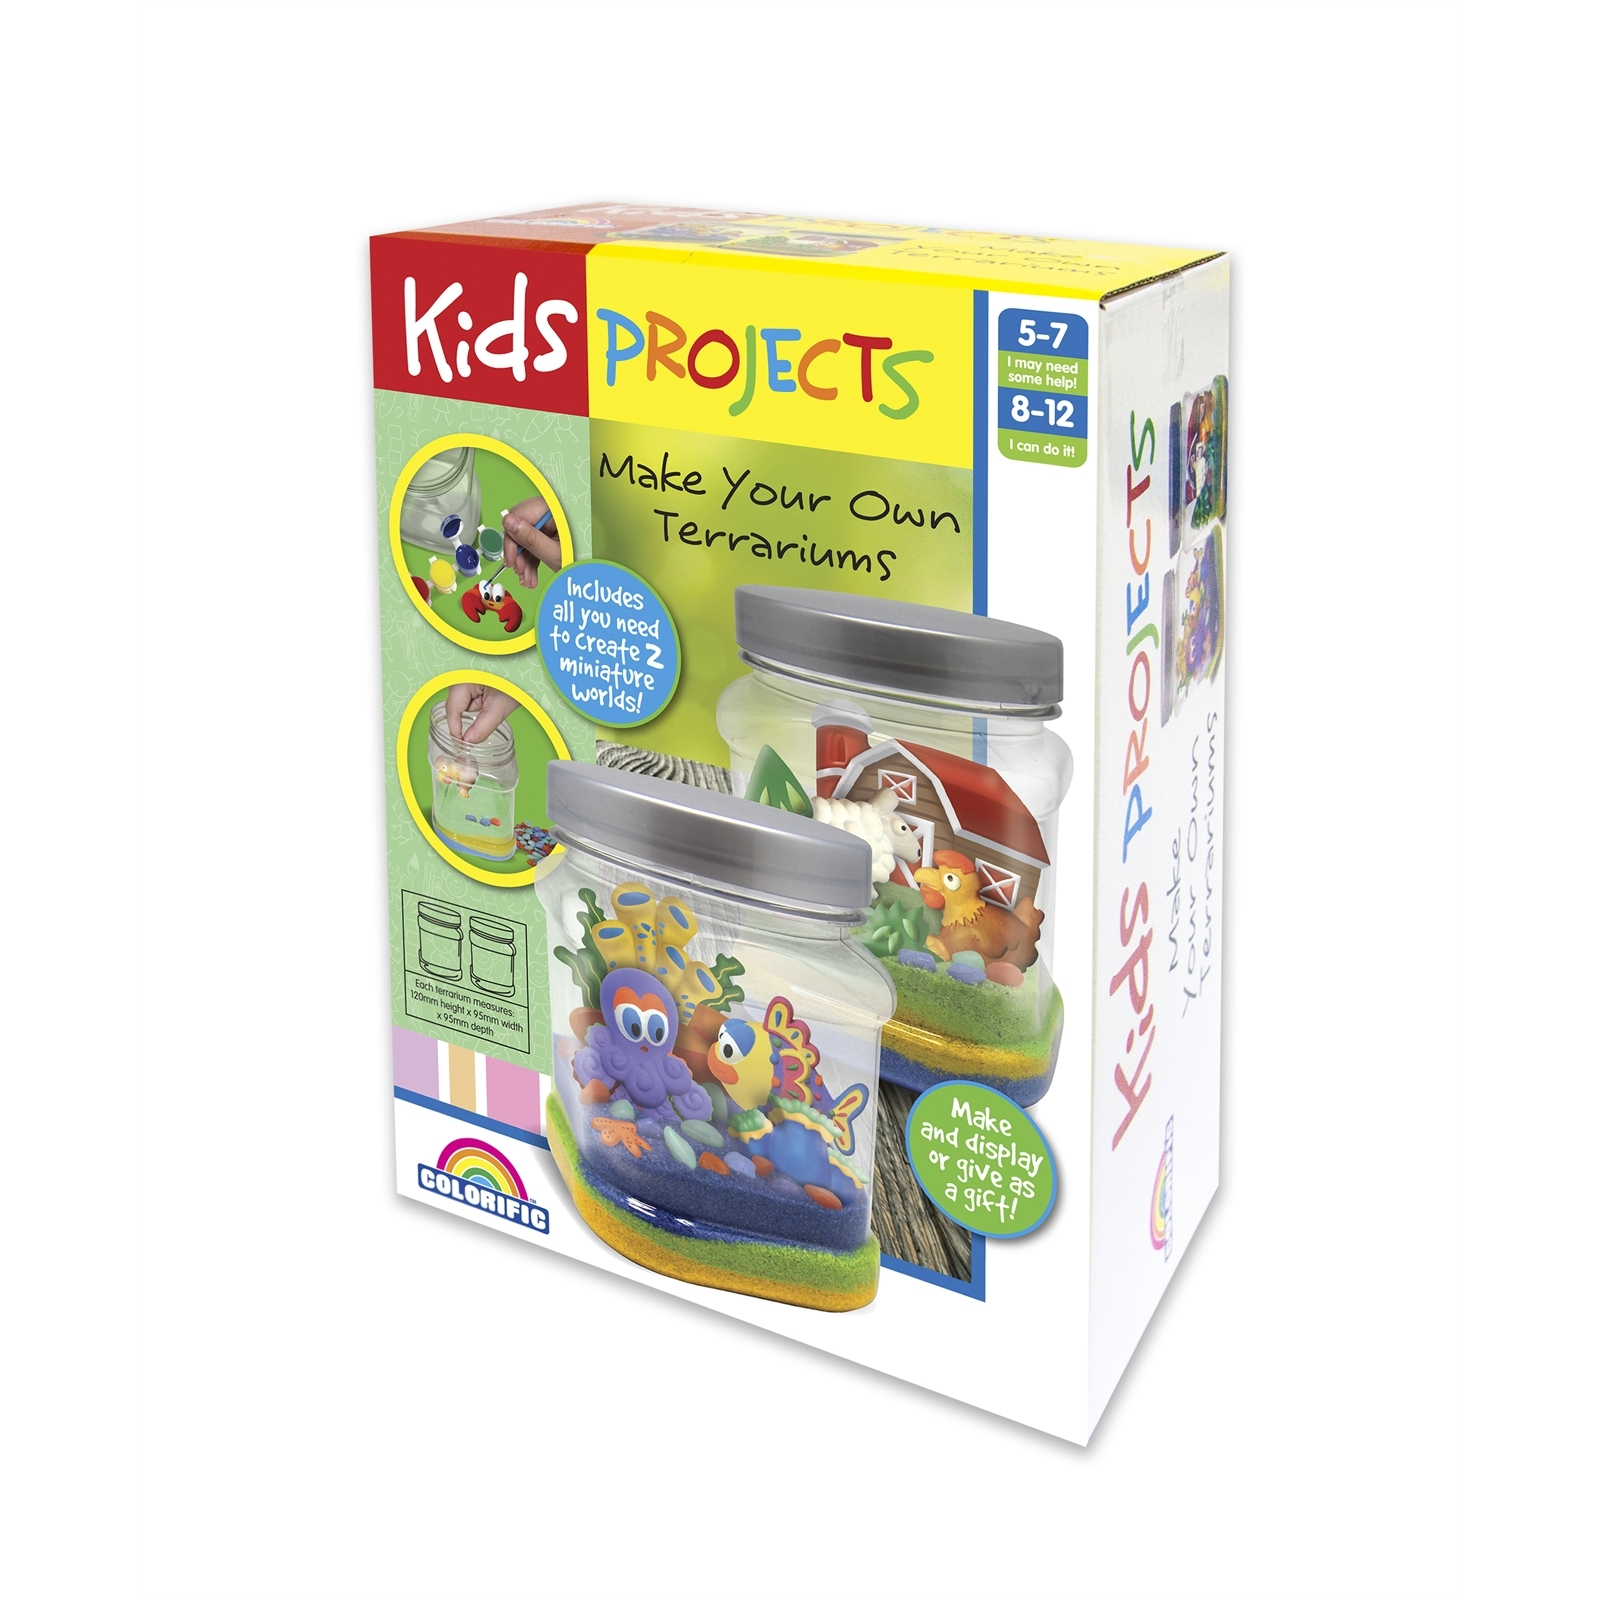 Kids Projects Make Your Own Terrariums Craft Kit